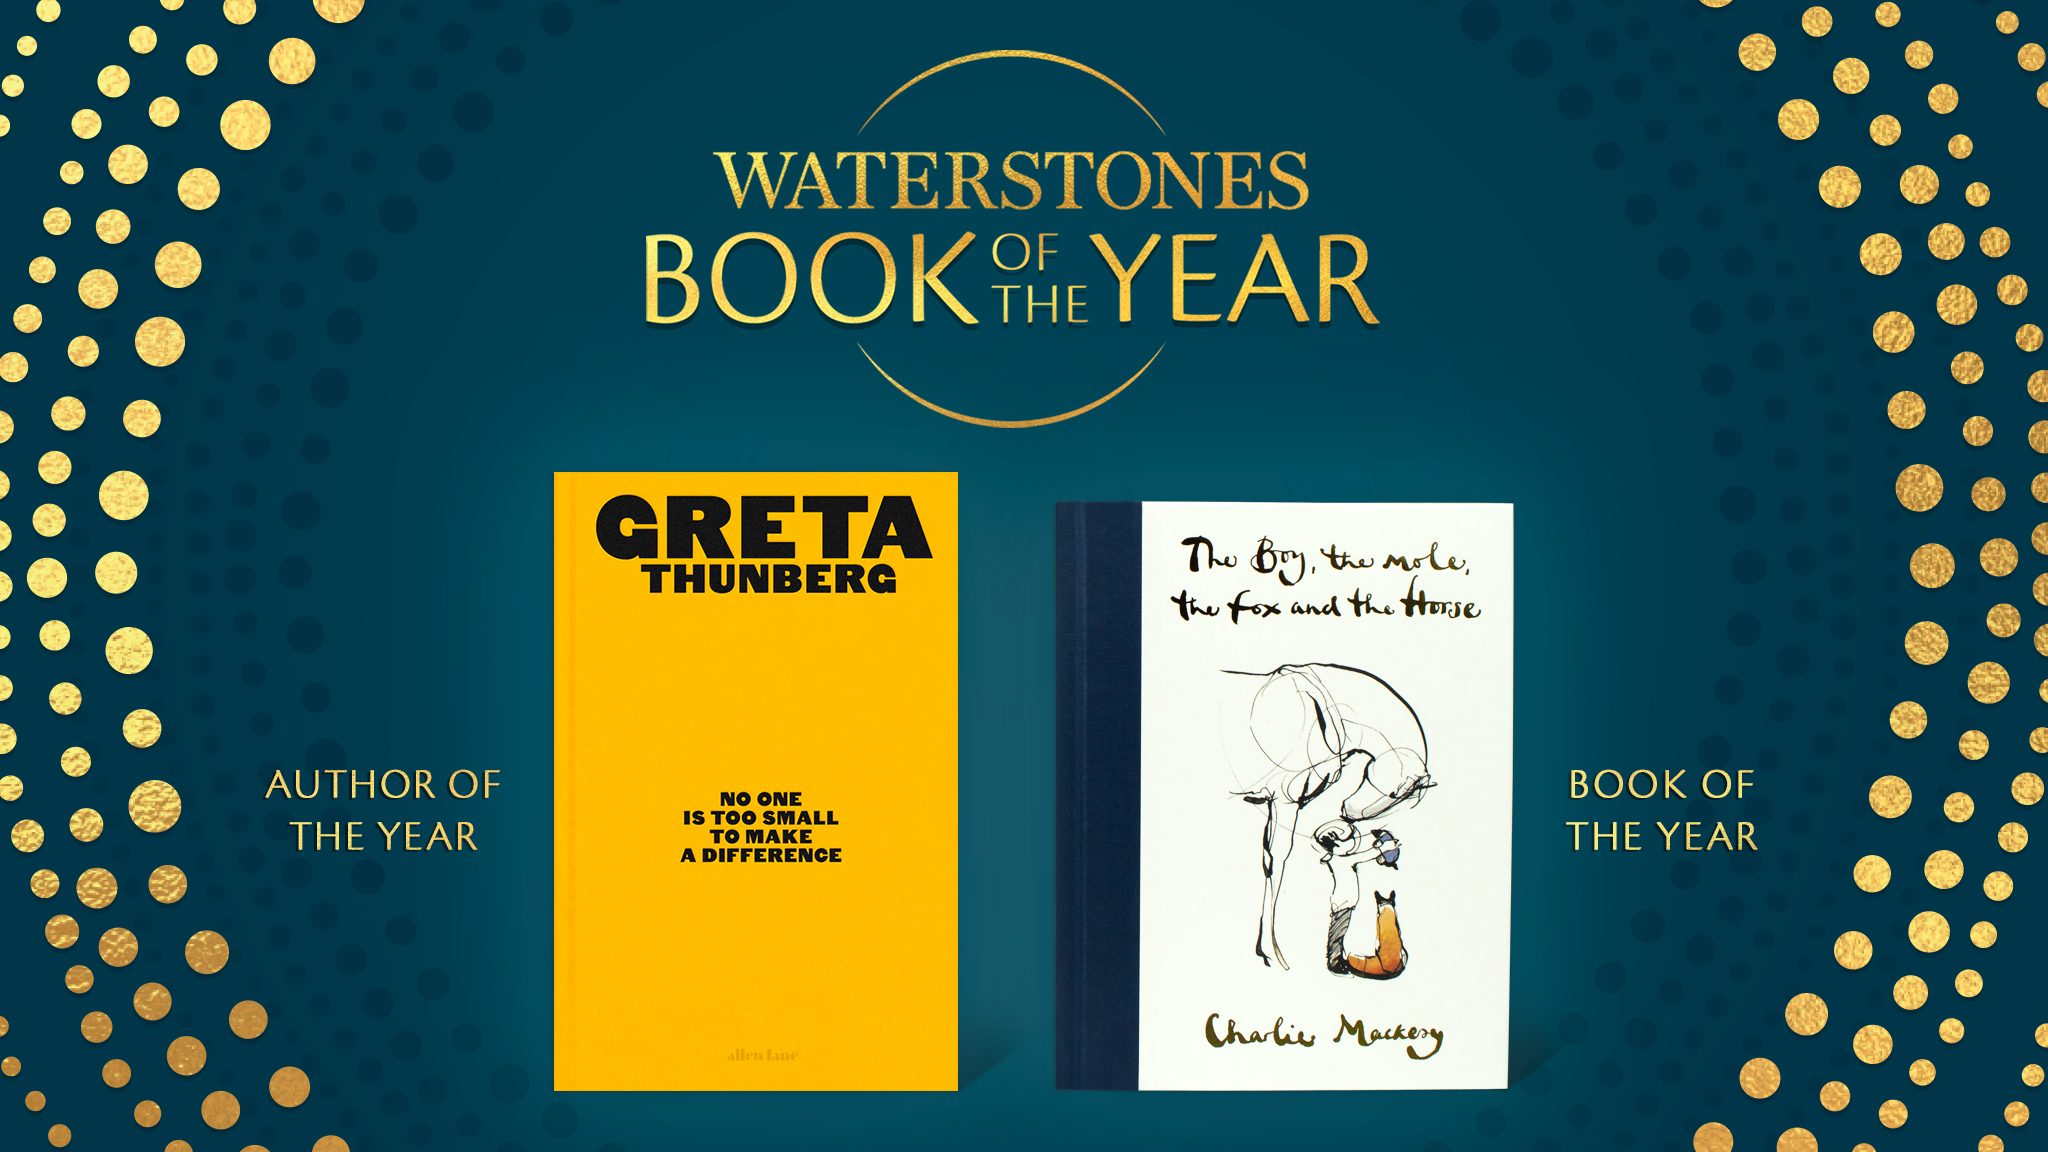 Penguin Books Uk On Twitter We Re Absolutely Over The Moon That The Boy The Mole The Fox And The Horse By Charliemackesy Is The Waterstones Bookoftheyear Gretathunberg Author Of One Is